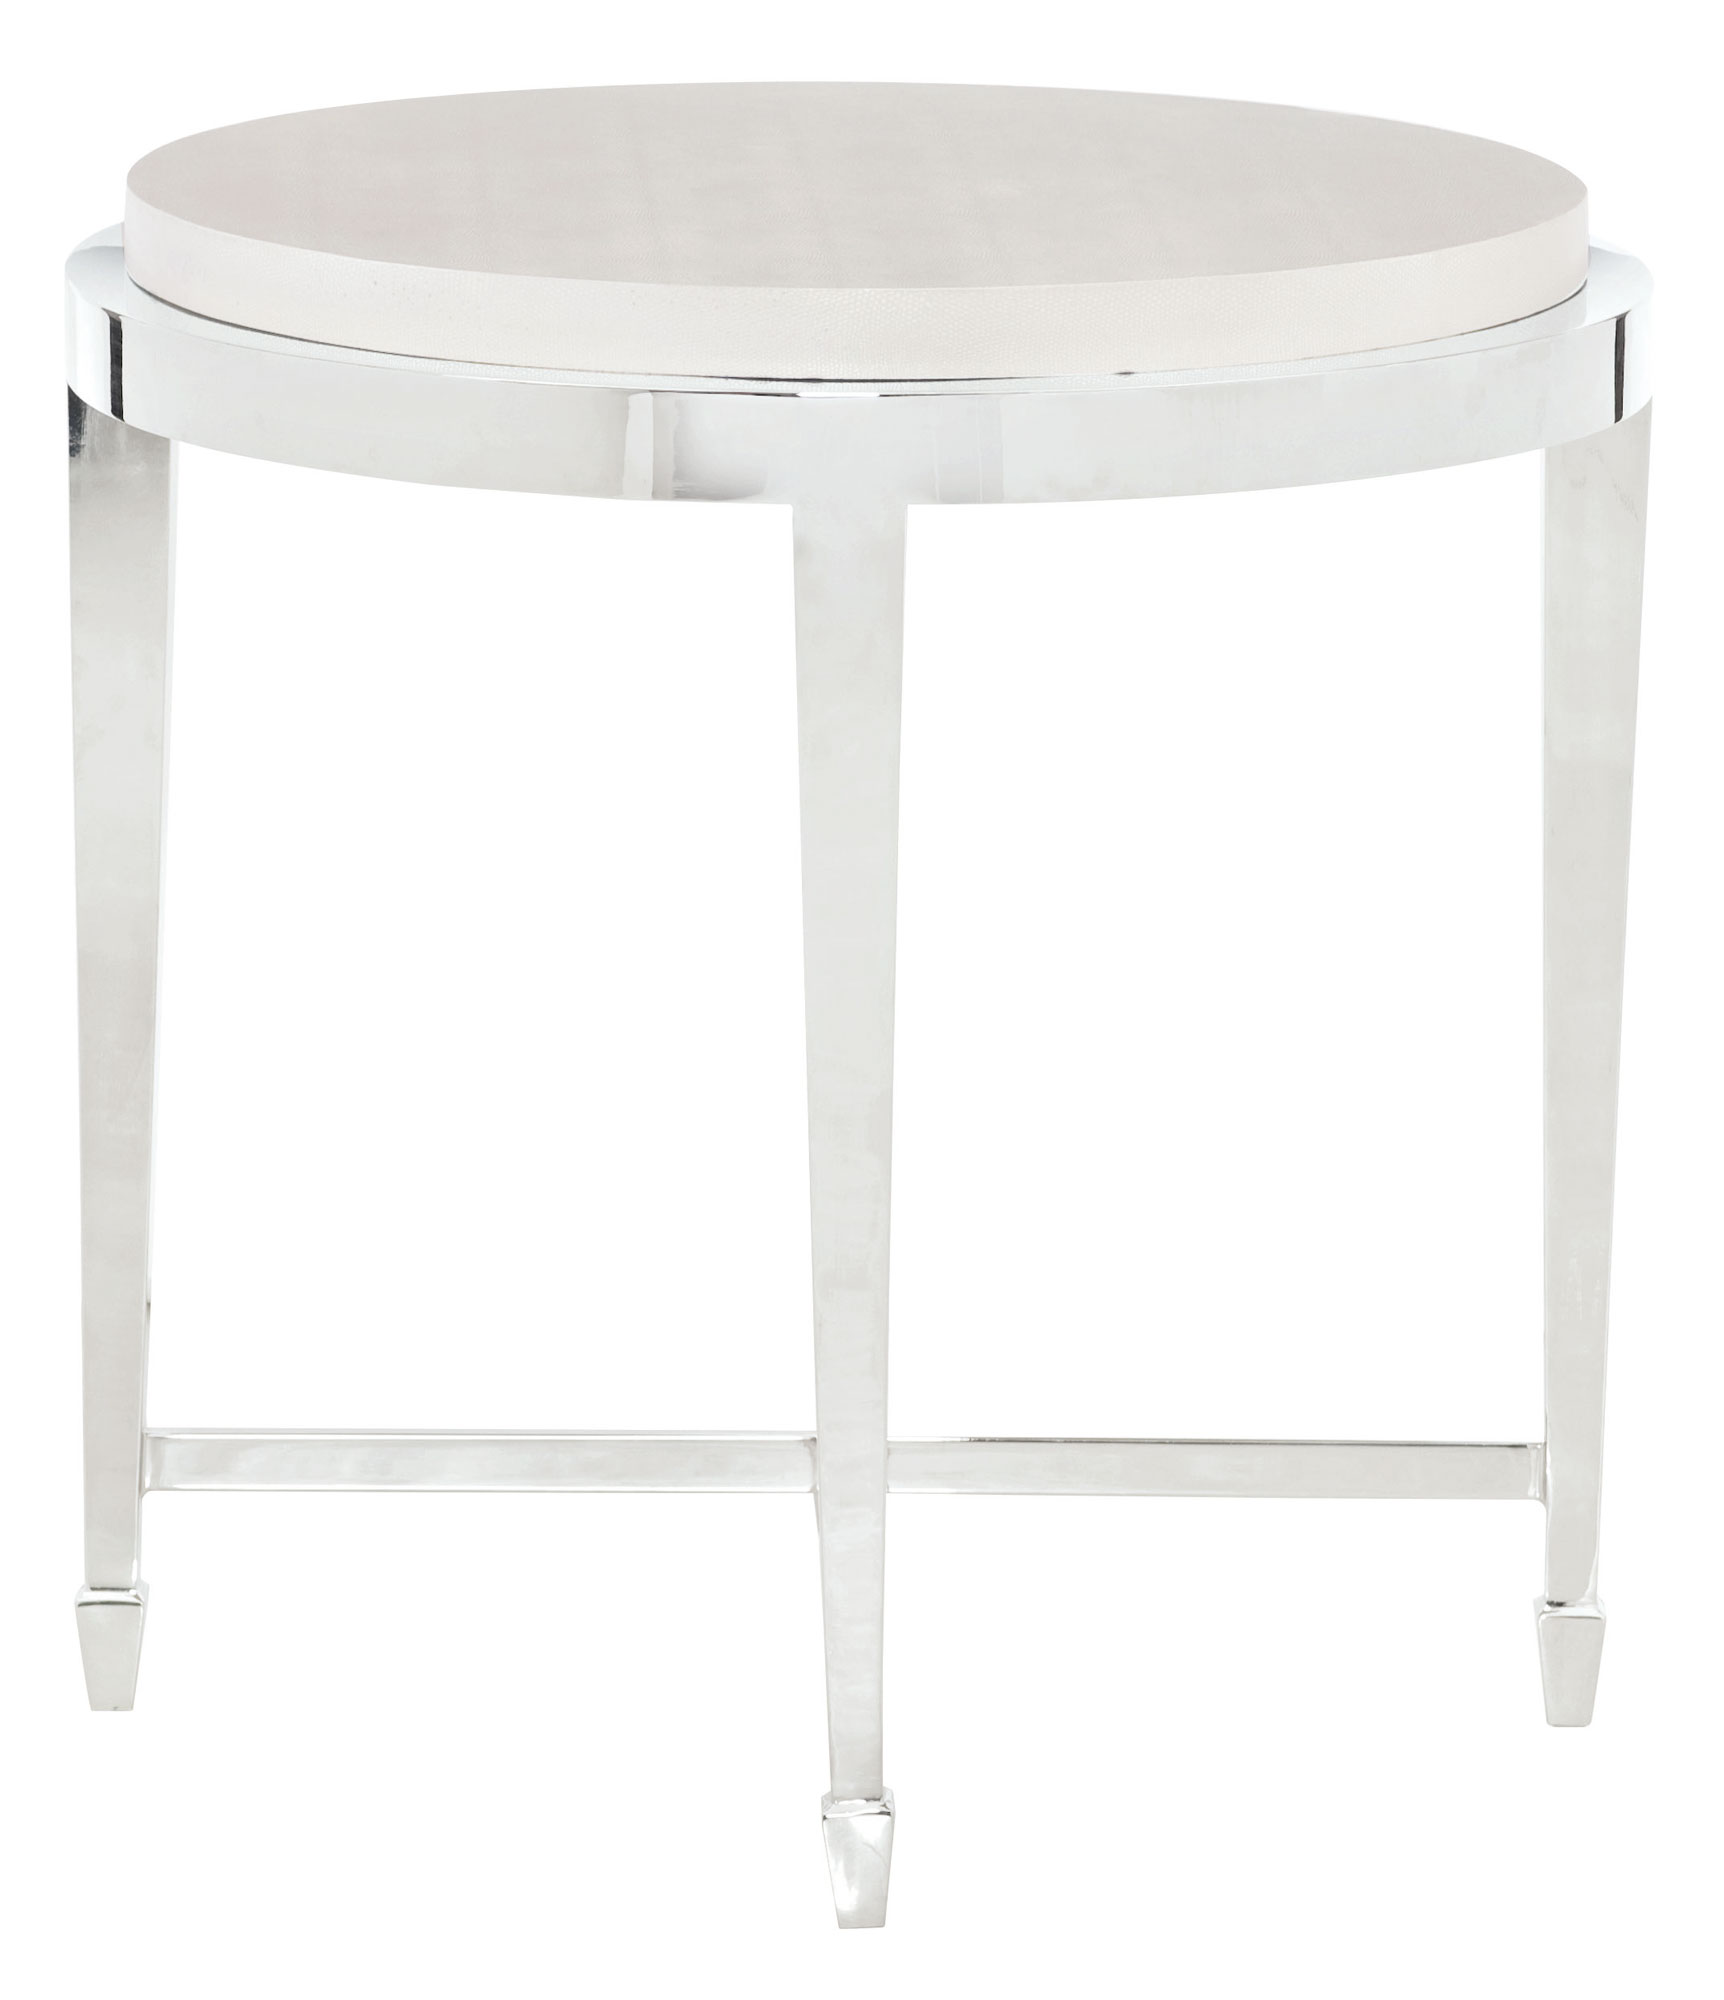 Circular End Tables Round End Table Bernhardt